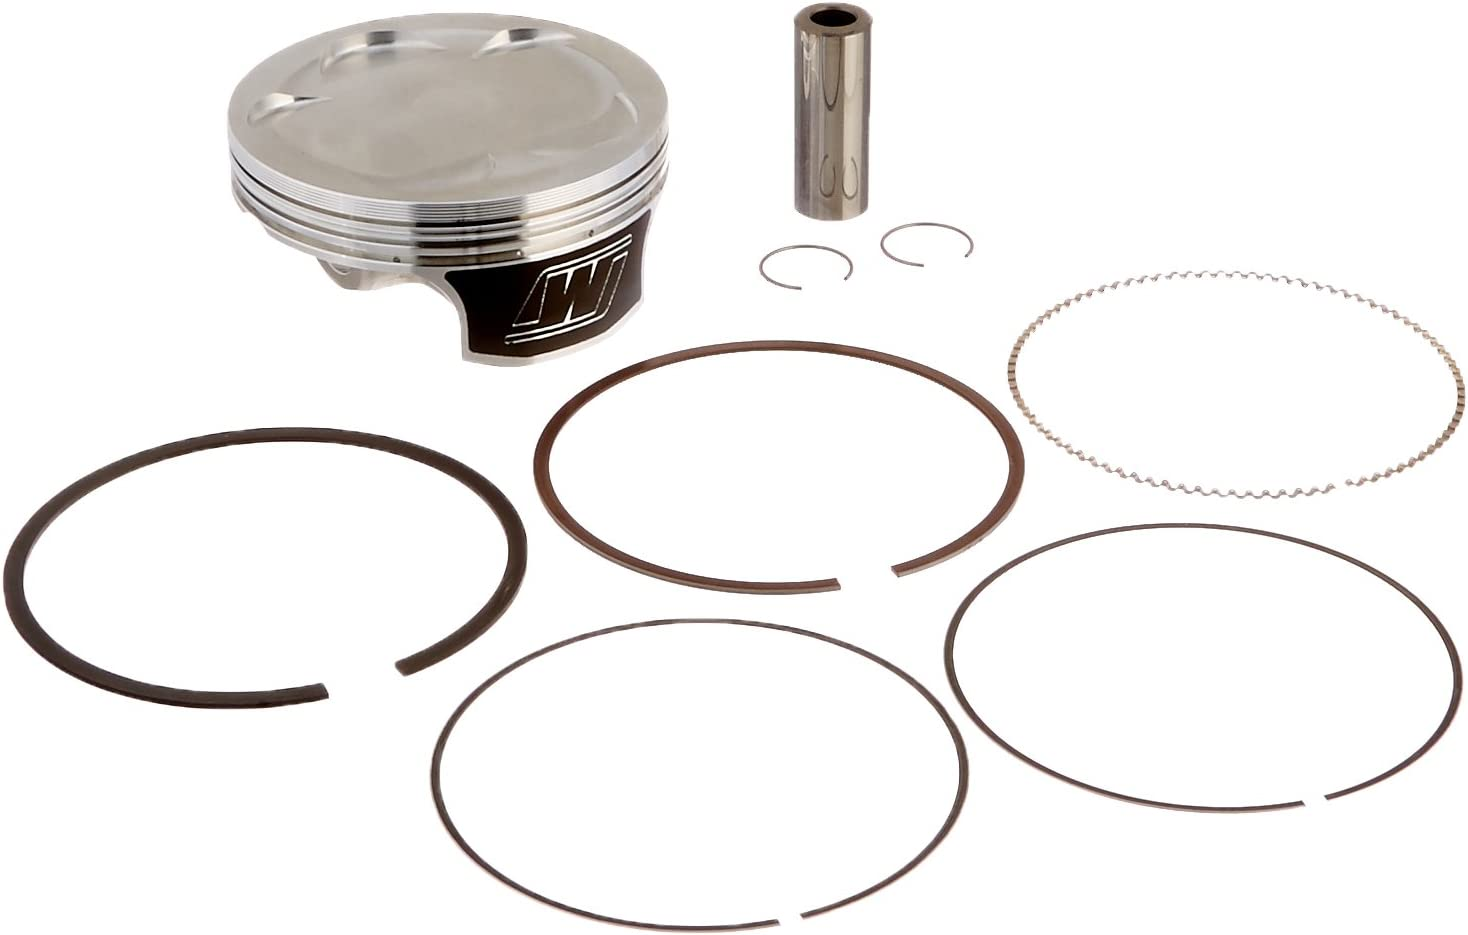 Wiseco 4820M09600 96.00mm 12:1 Compression 449cc Motorcycle Piston Kit